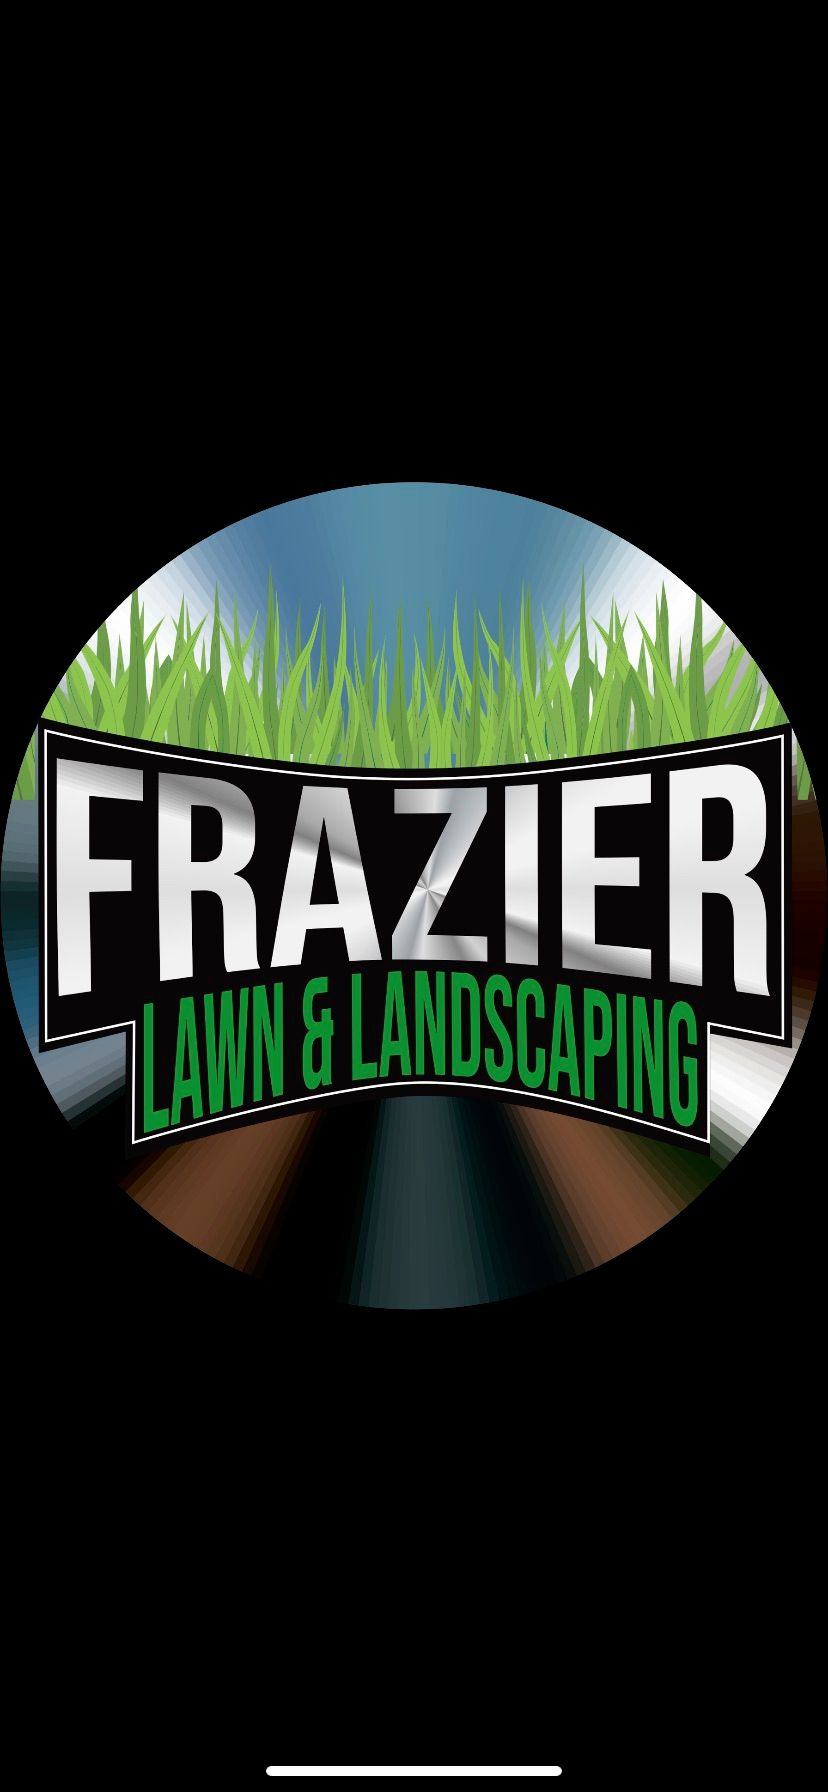 Frazier Lawn and Landscaping